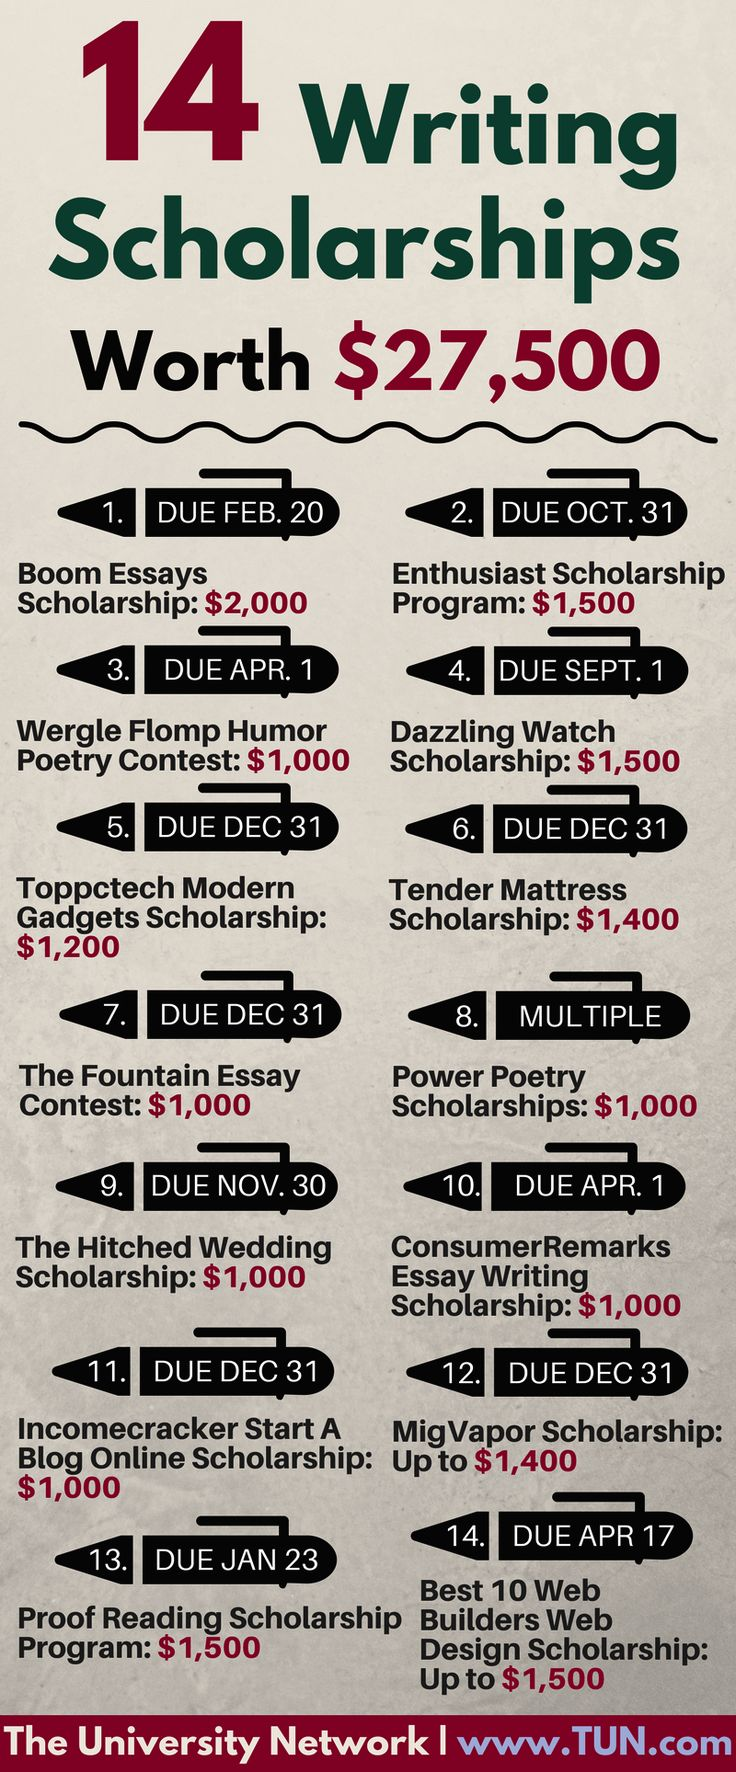 #scholarships #scholarships #writing #welcome #writers